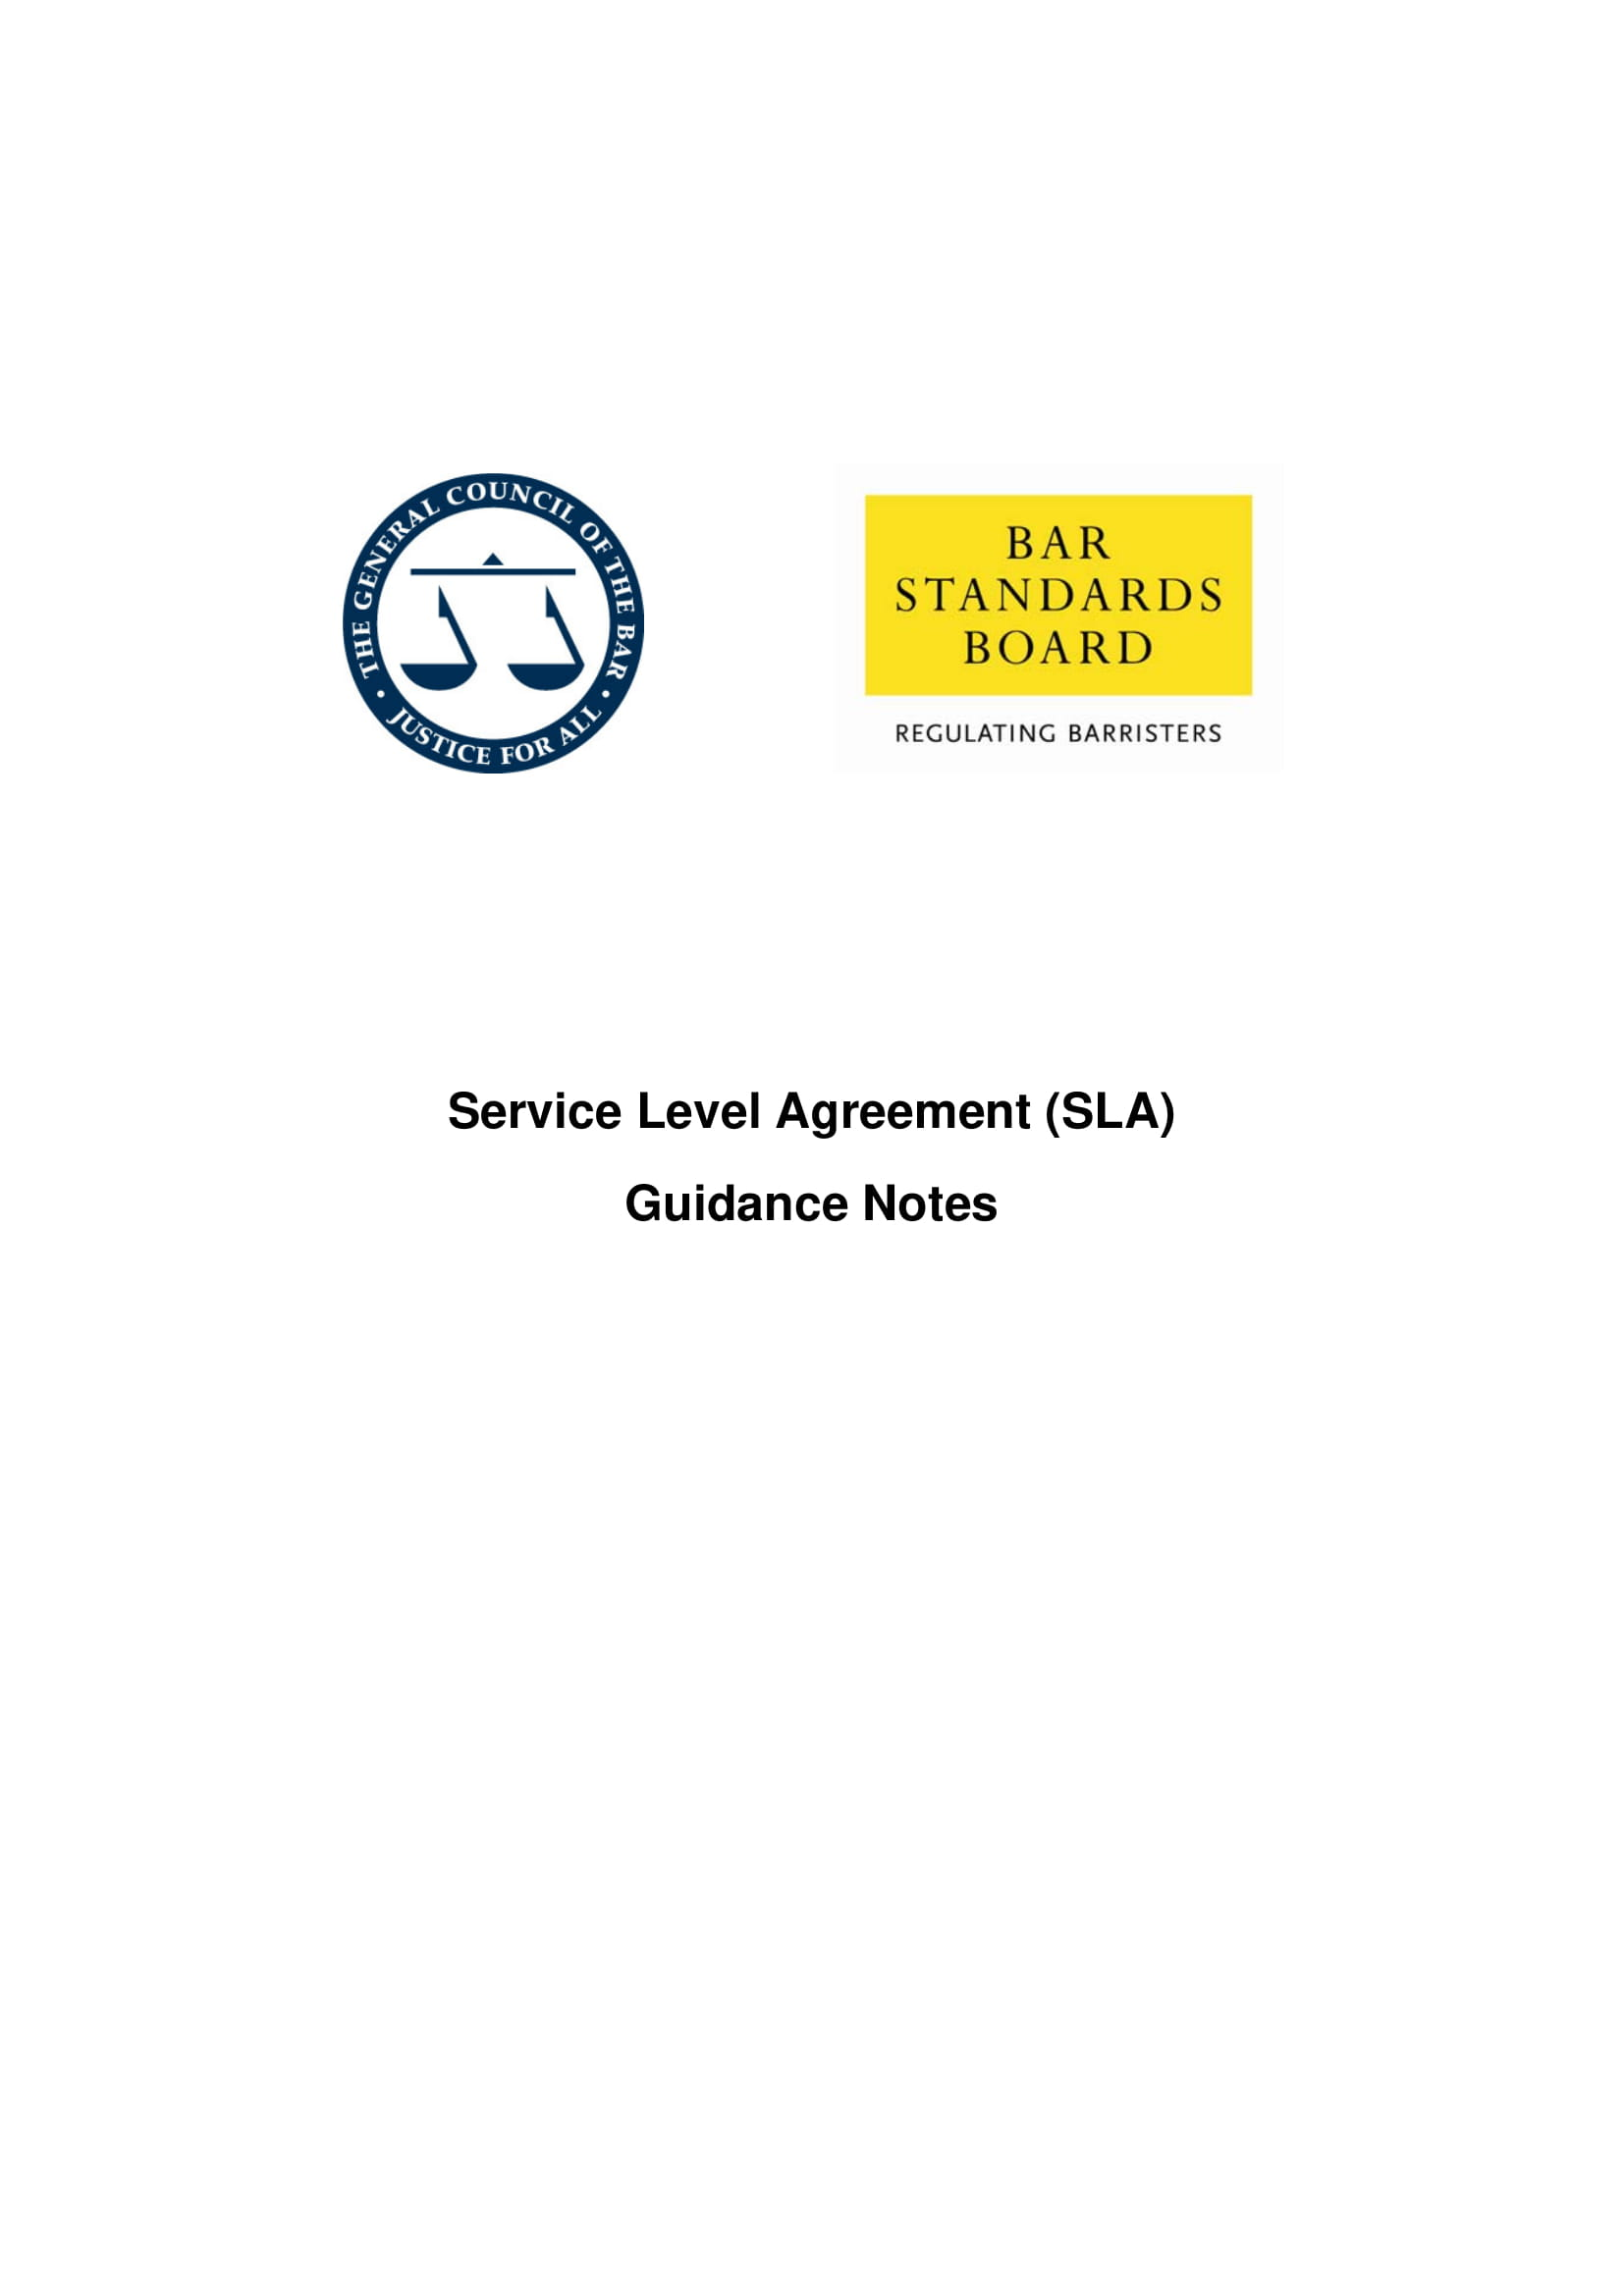 service level agreement sla guidance notes example 12